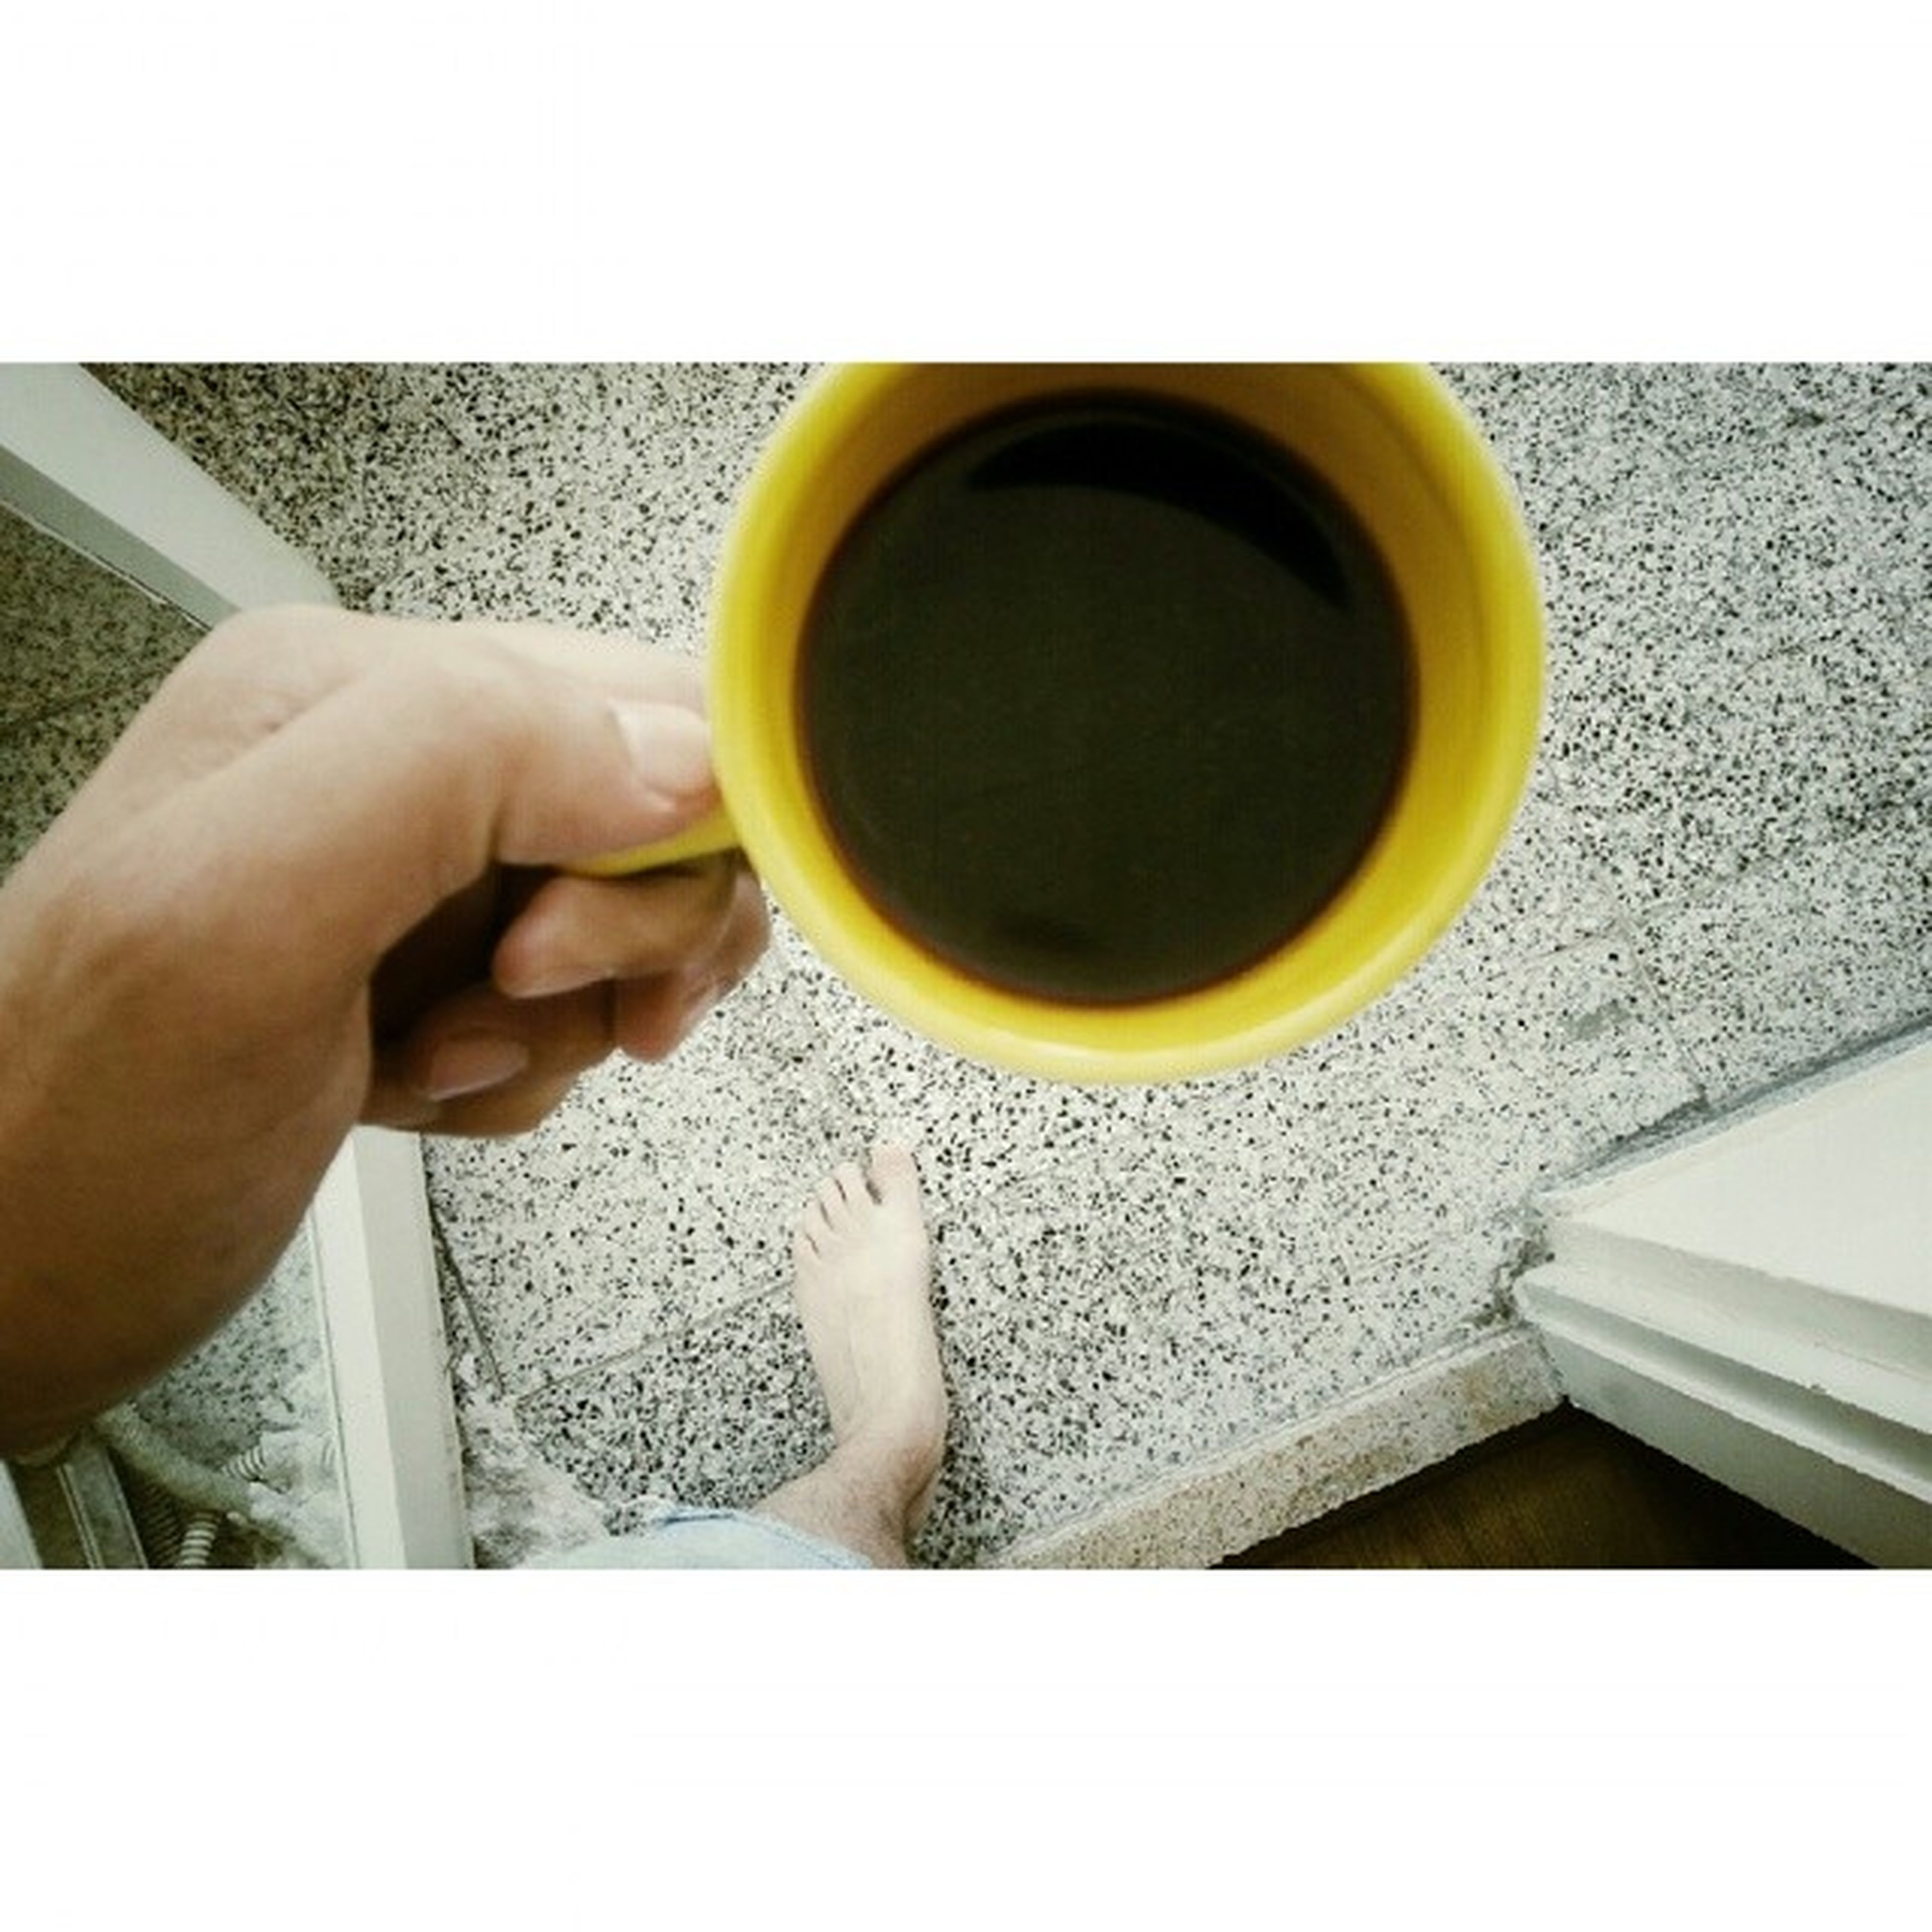 drink, food and drink, refreshment, holding, coffee cup, person, lifestyles, coffee - drink, indoors, freshness, part of, transfer print, leisure activity, coffee, cup, cropped